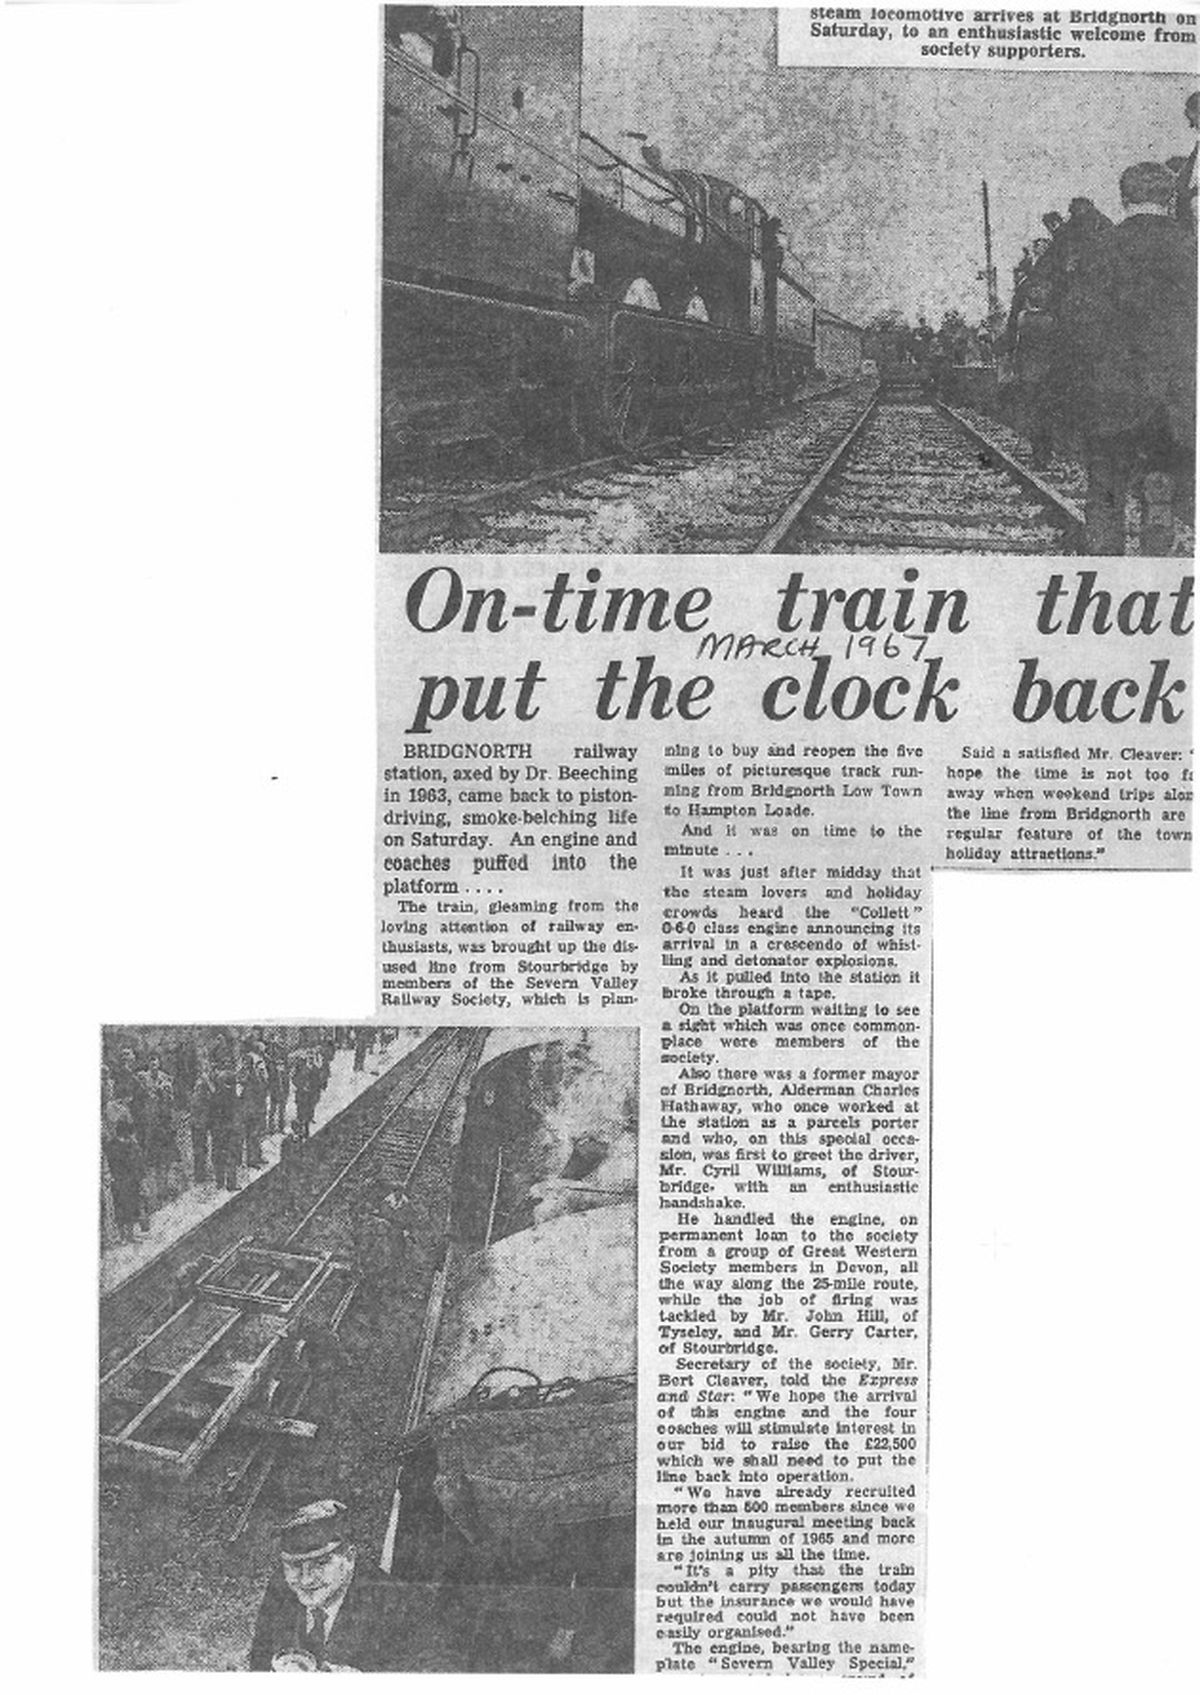 A newspaper article marking the engine's arrival